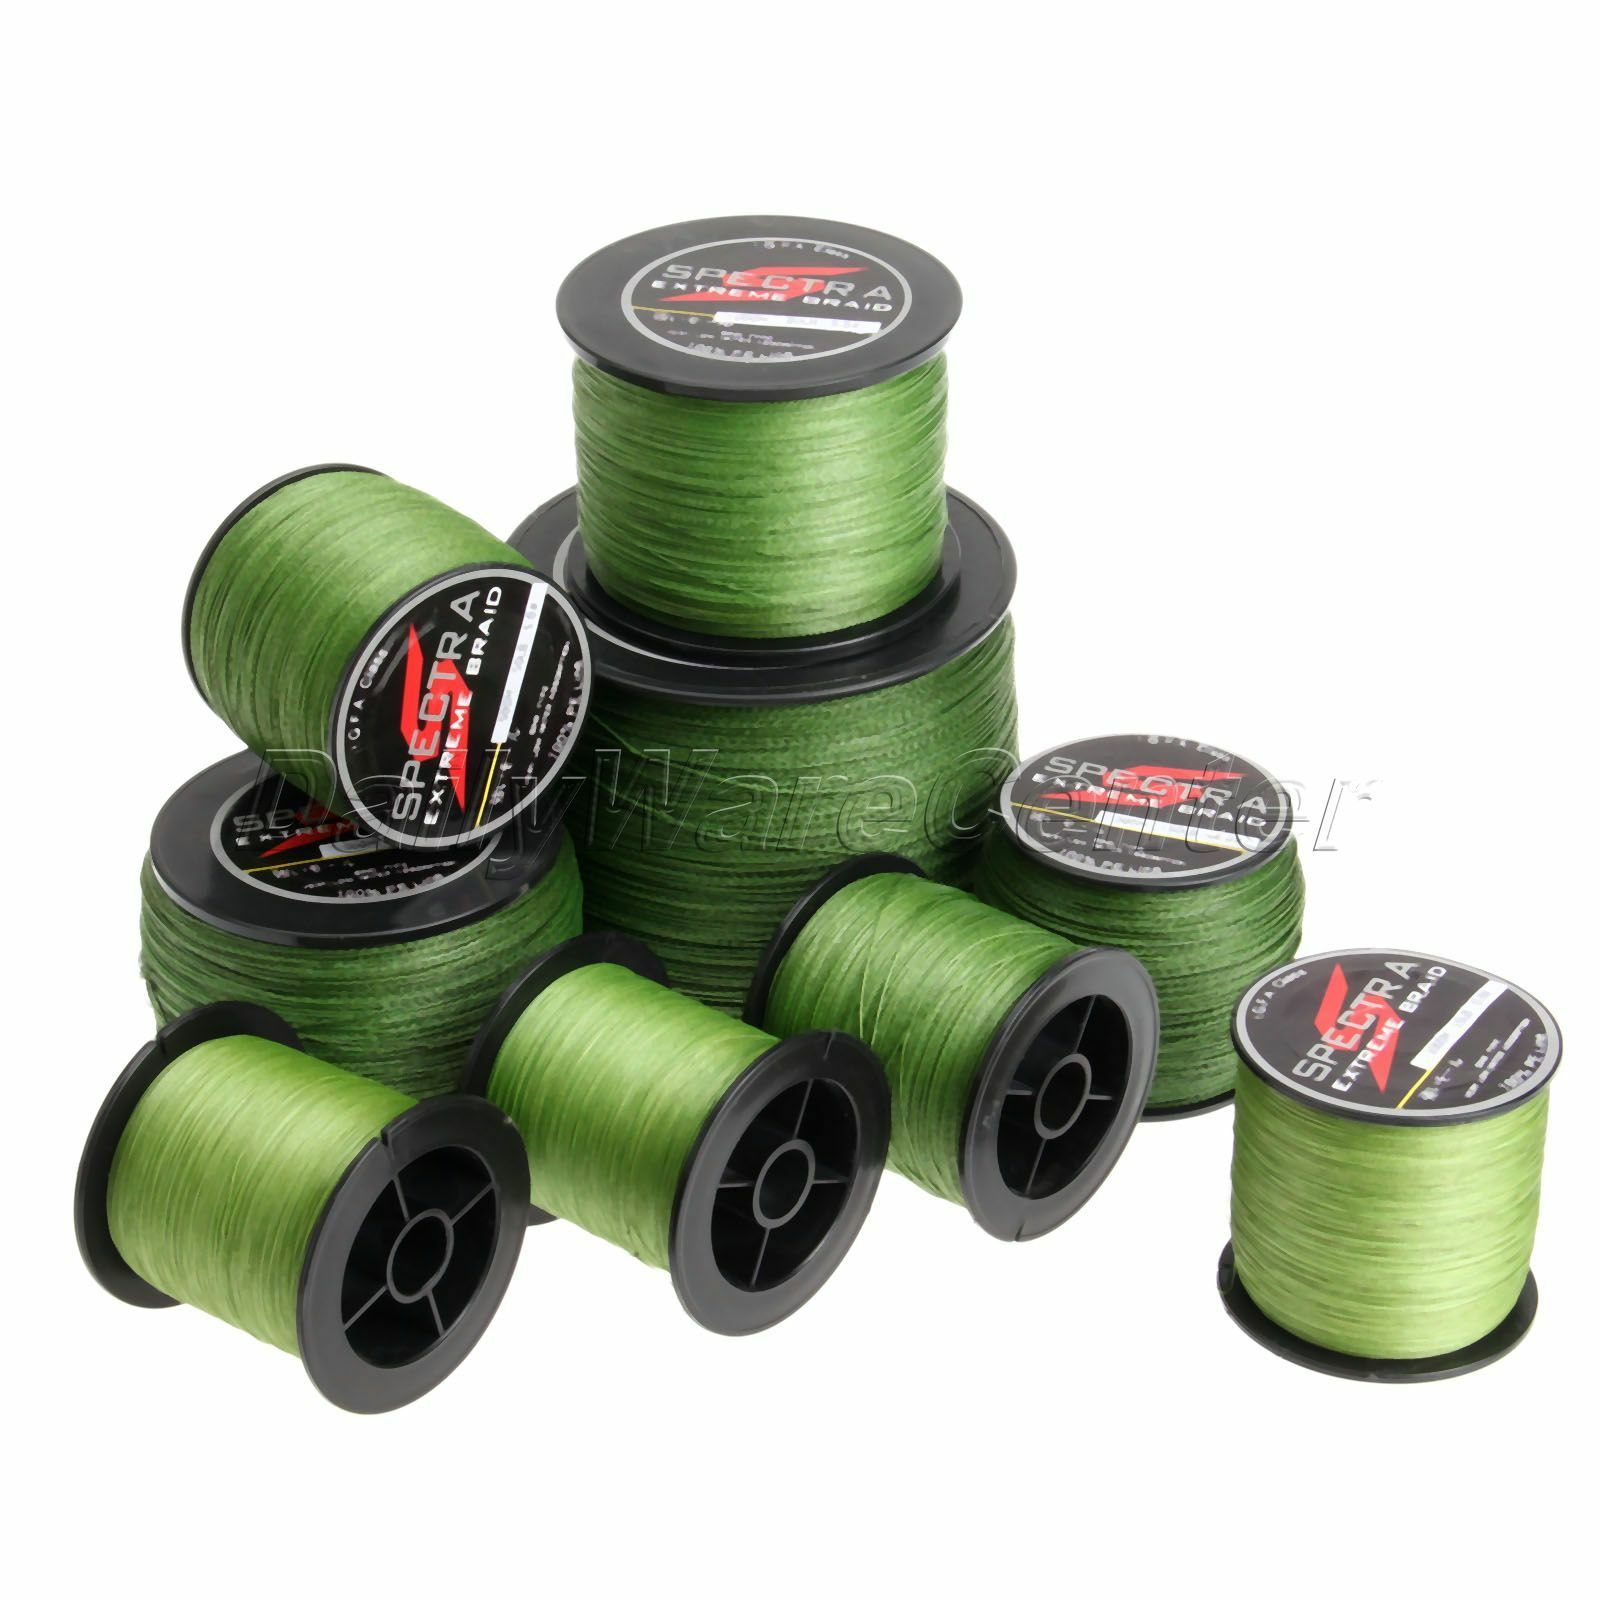 300M -1000M 10LB-150LB 4 Strands Army Green Spectra PE Braided Line Fishing Line